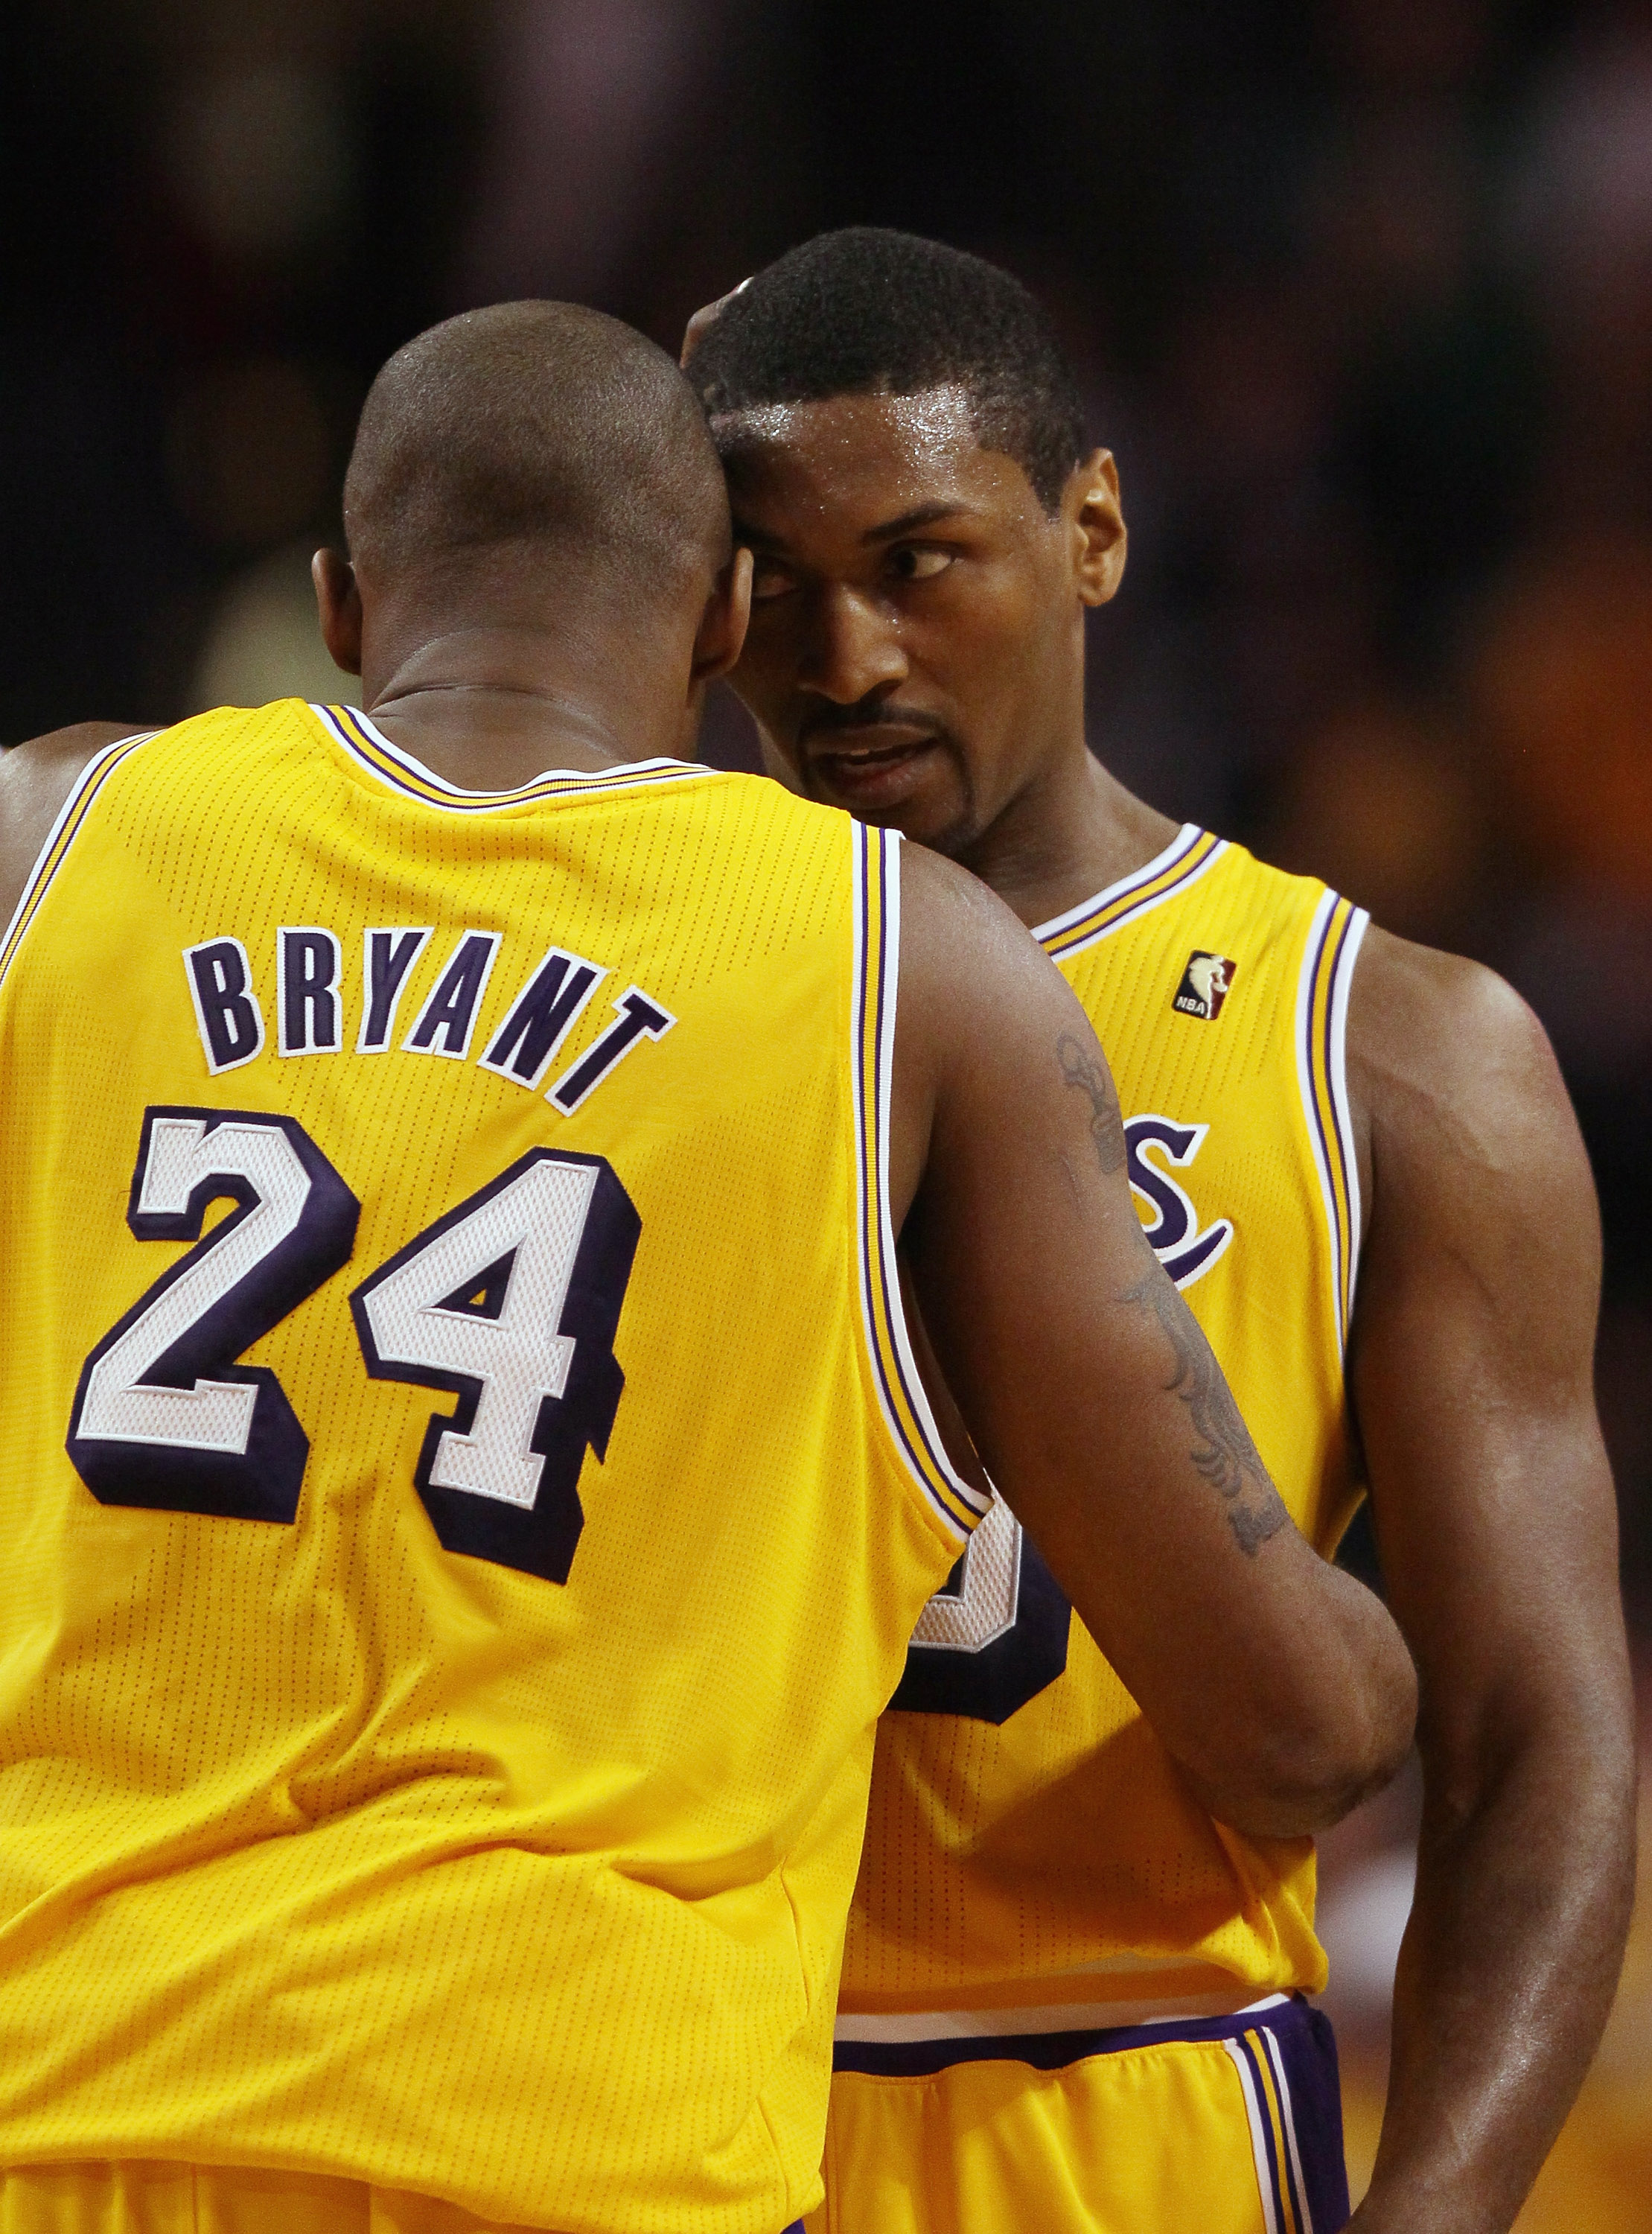 BOSTON, MA - FEBRUARY 10:  Ron Artest #15 and Kobe Bryant #24 of the Los Angeles Lakers talk during a stop in play in the second half against the Boston Celtics on February 10, 2011 at the TD Garden in Boston, Massachusetts.  The Lakers defeated the Celti